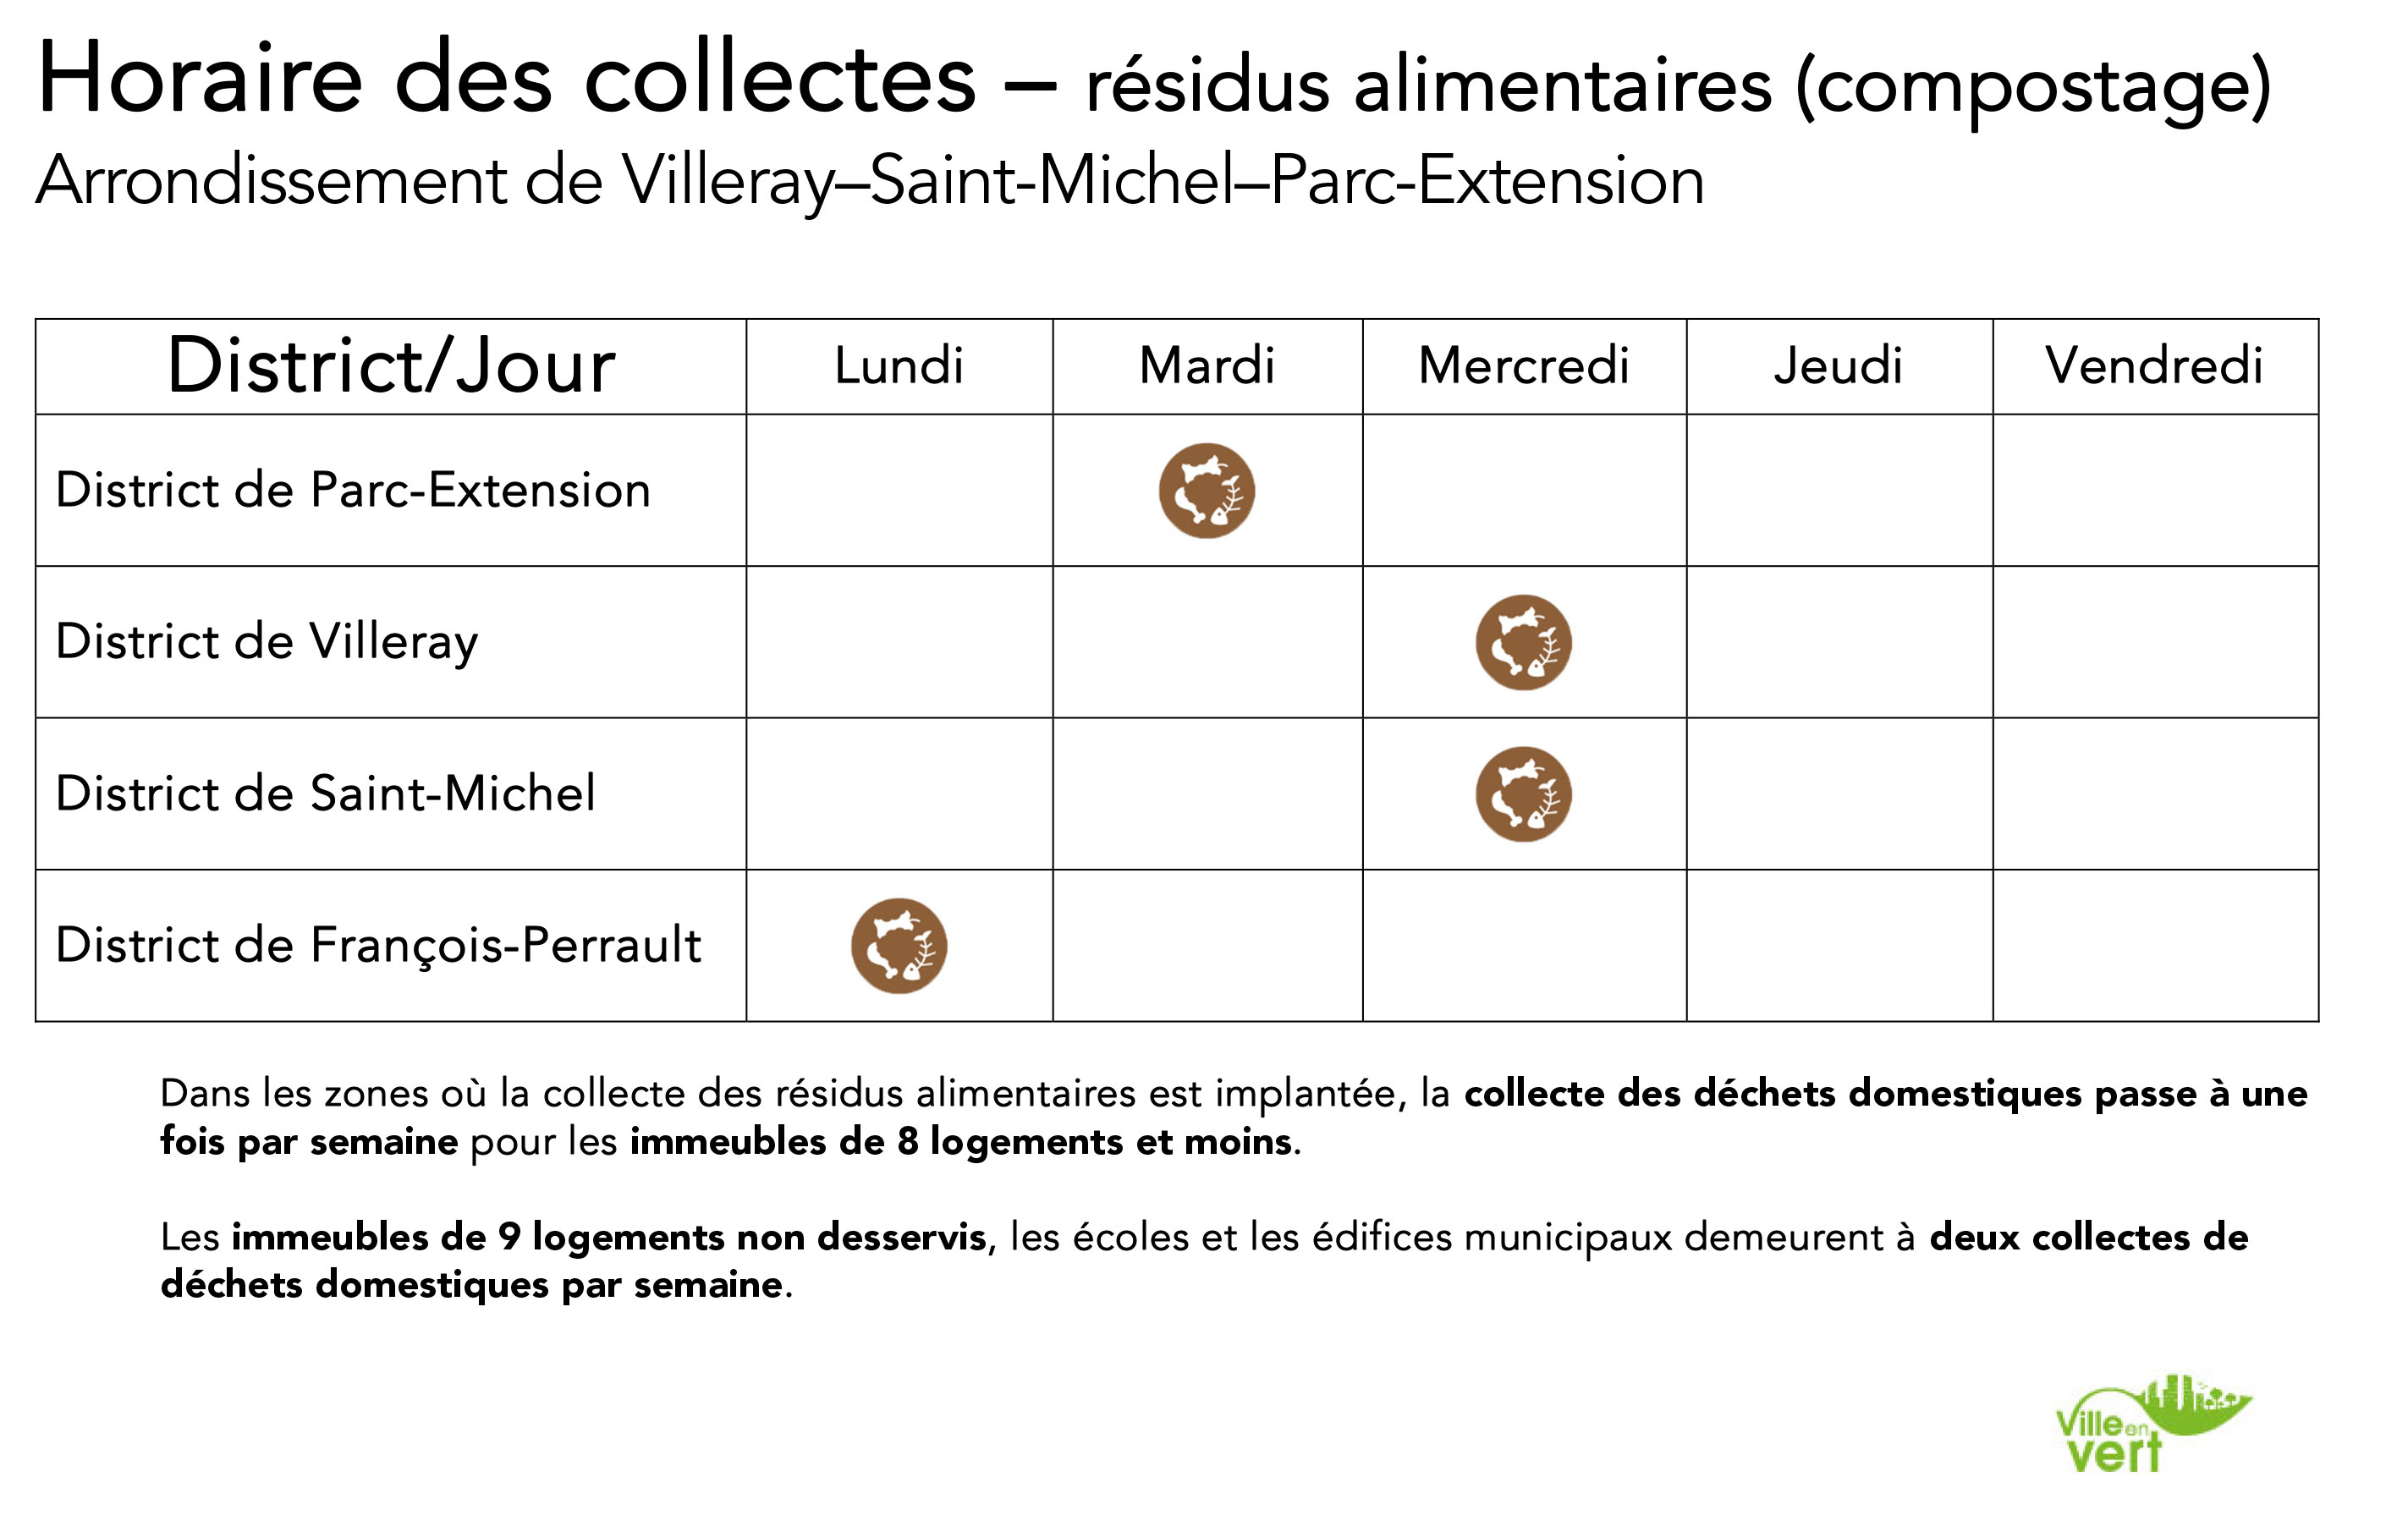 Horaire collectes - Résidus alimentaires (compostage) - Villeray–Saint-Michel–Parc-Extension